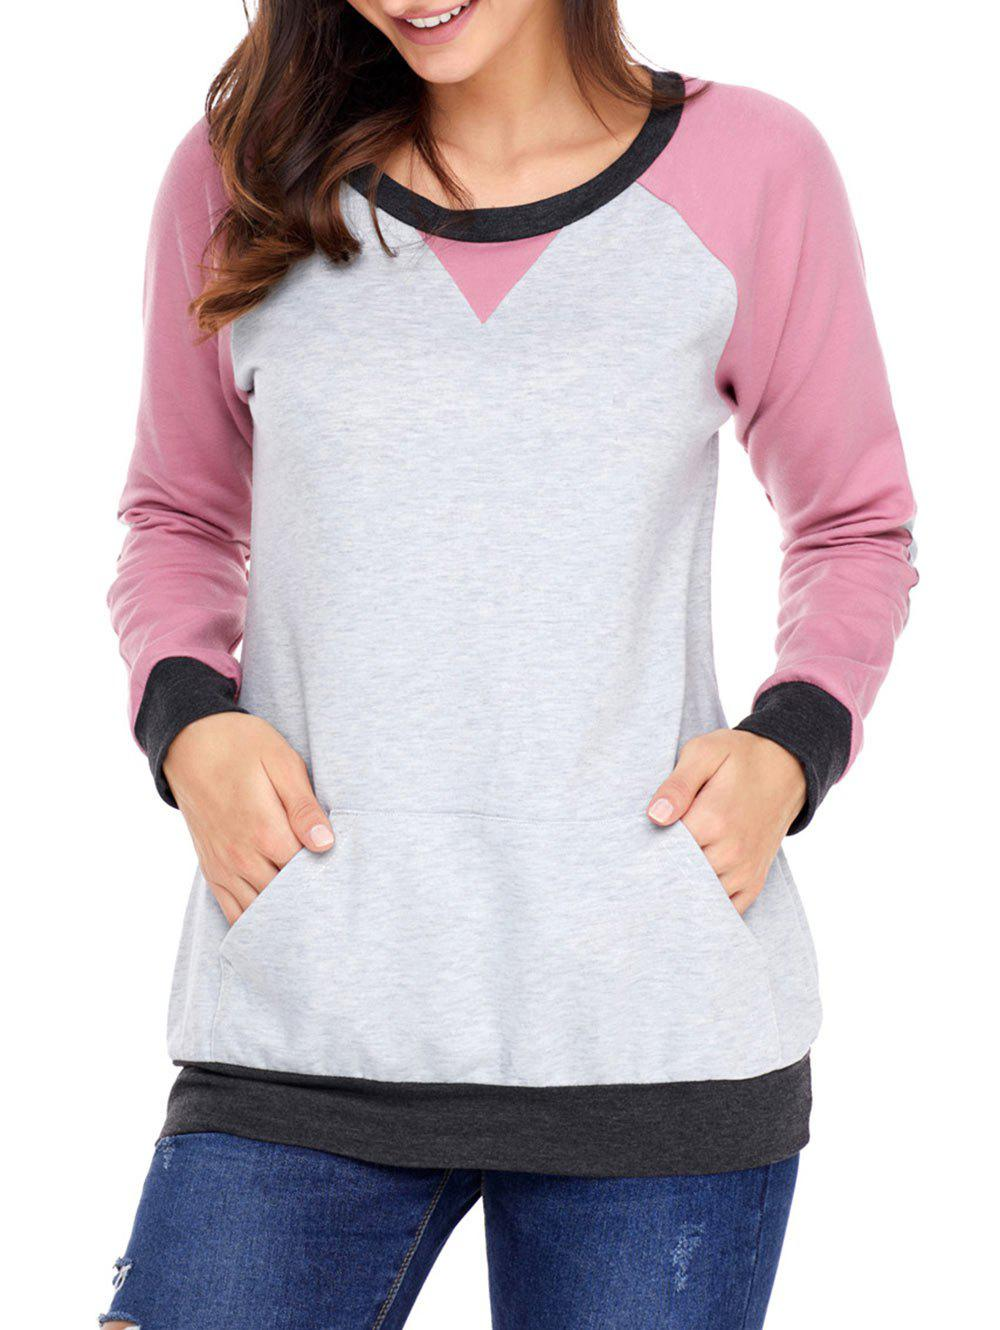 Kangaroo Pocket Color Block Elbow Patch Sweatshirt - PINK S